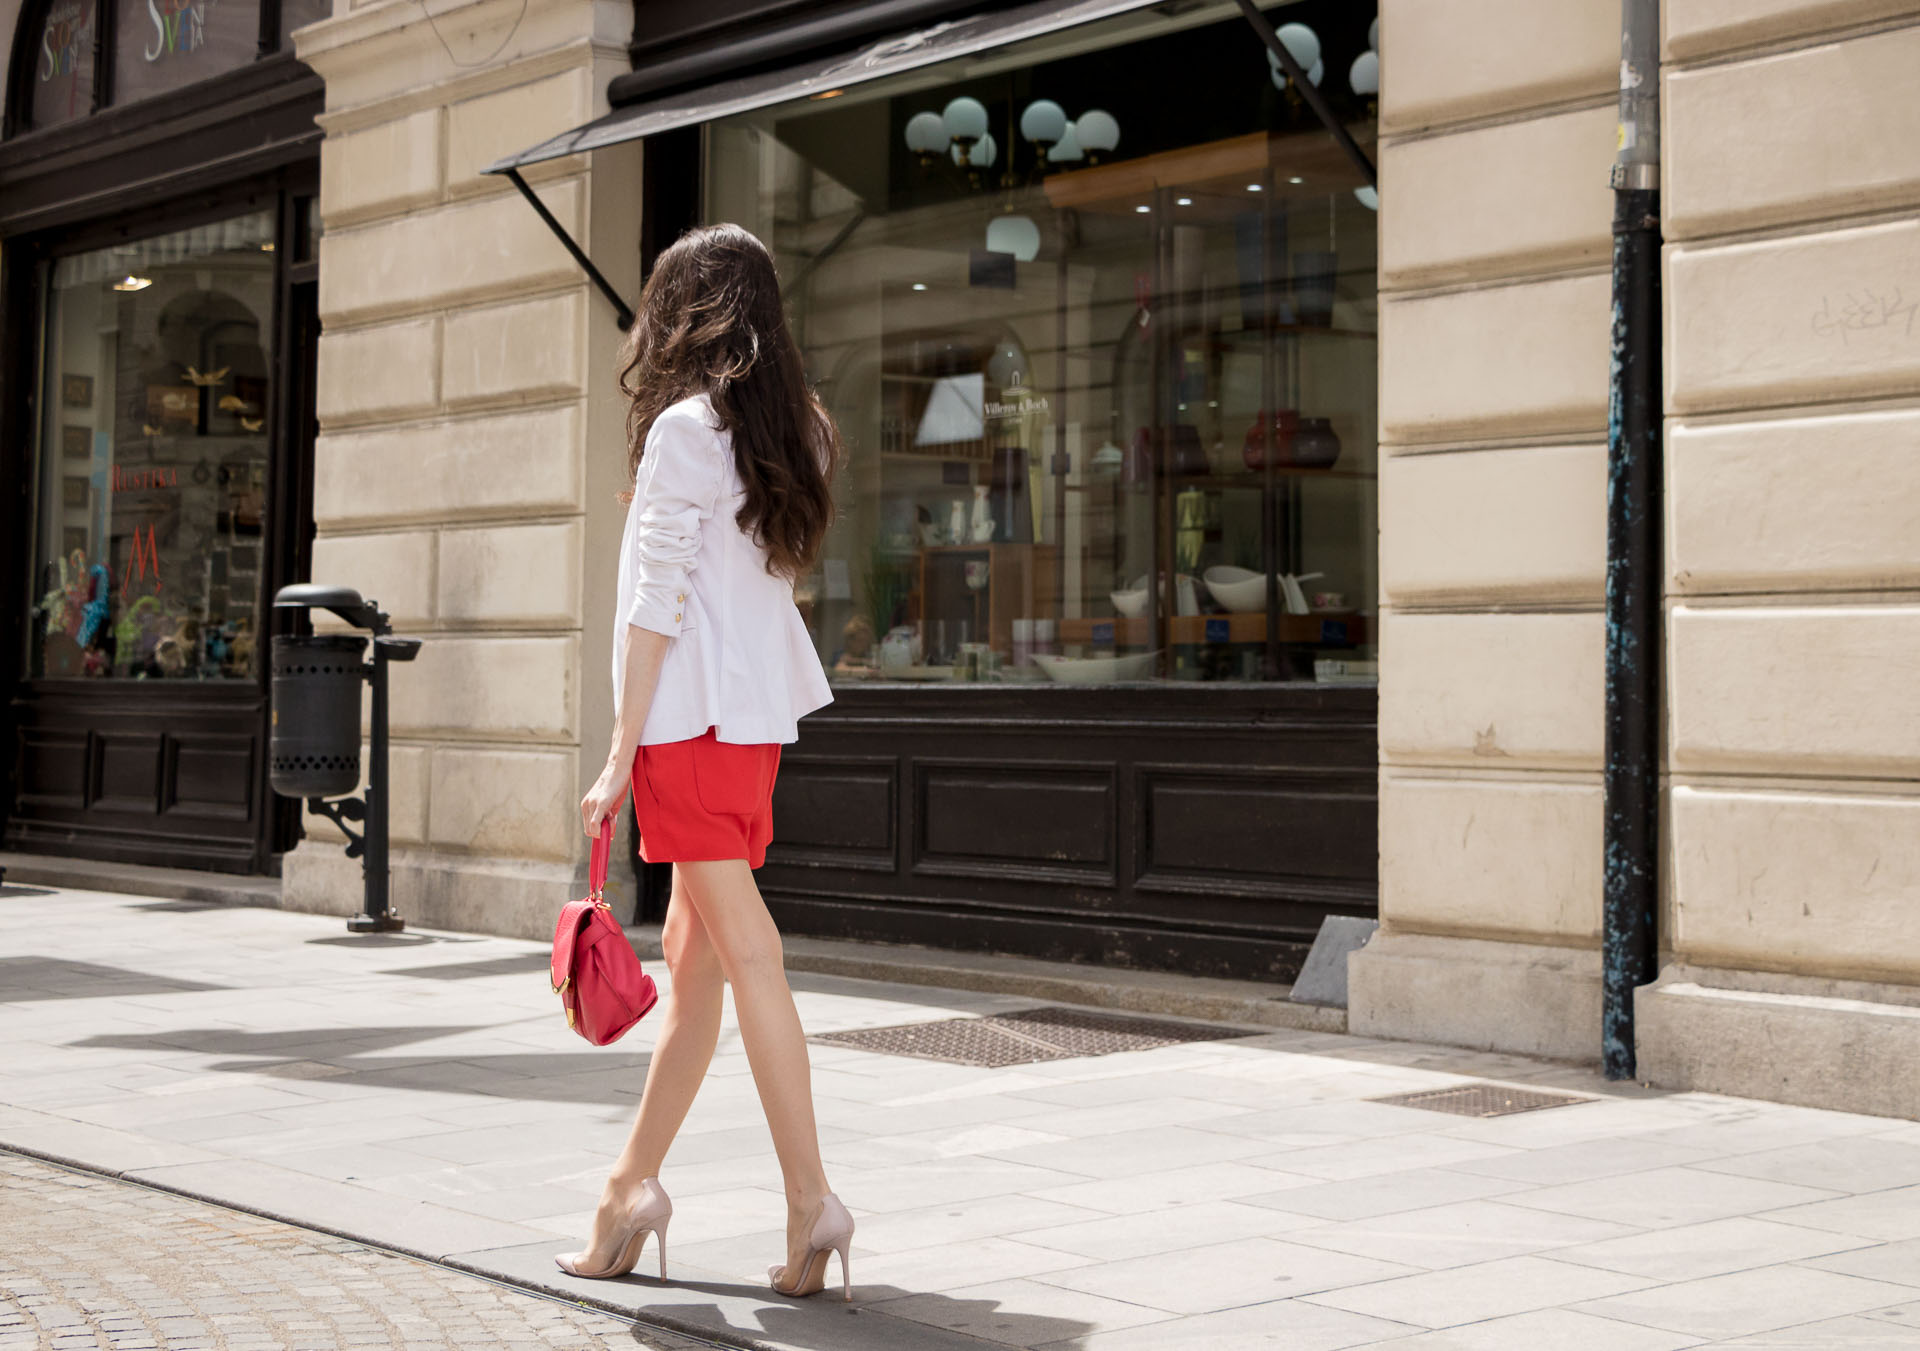 Veronika Lipar Fashion Blogger of Brunette from Wall Street dressed in red playsuit, white blazer, Adam Selman x Le Specs white cat eye Lolita sunglasses, pink top handle See by Chloe bag, Gianvito Rossi plexi pumps on the street in Ljubljana